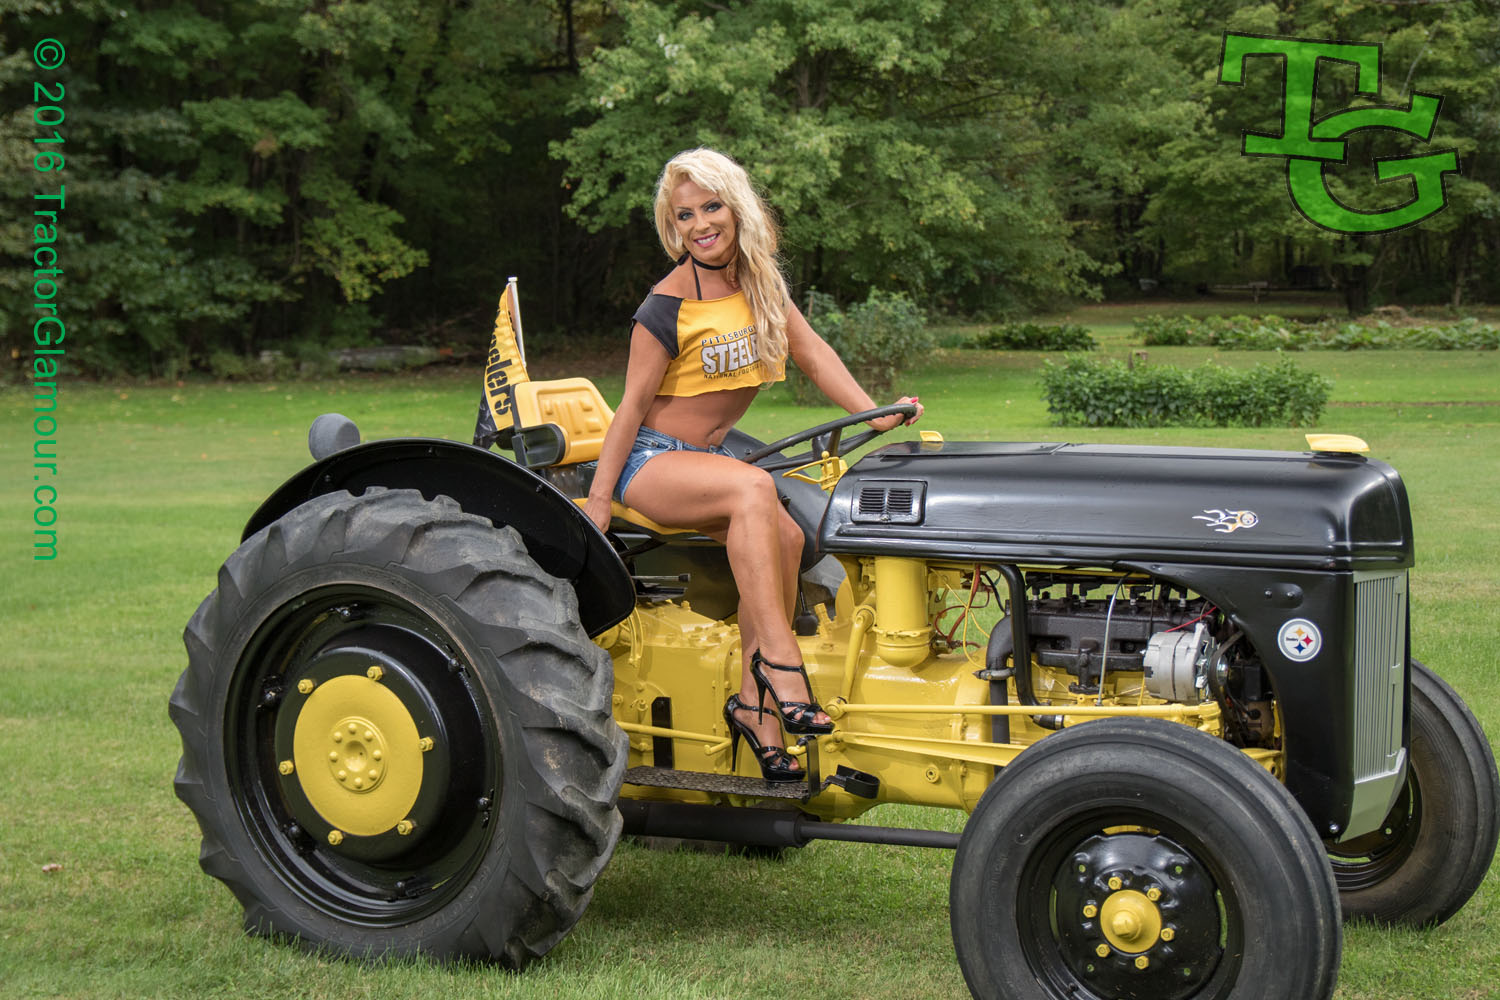 Naked farm girls on tractors